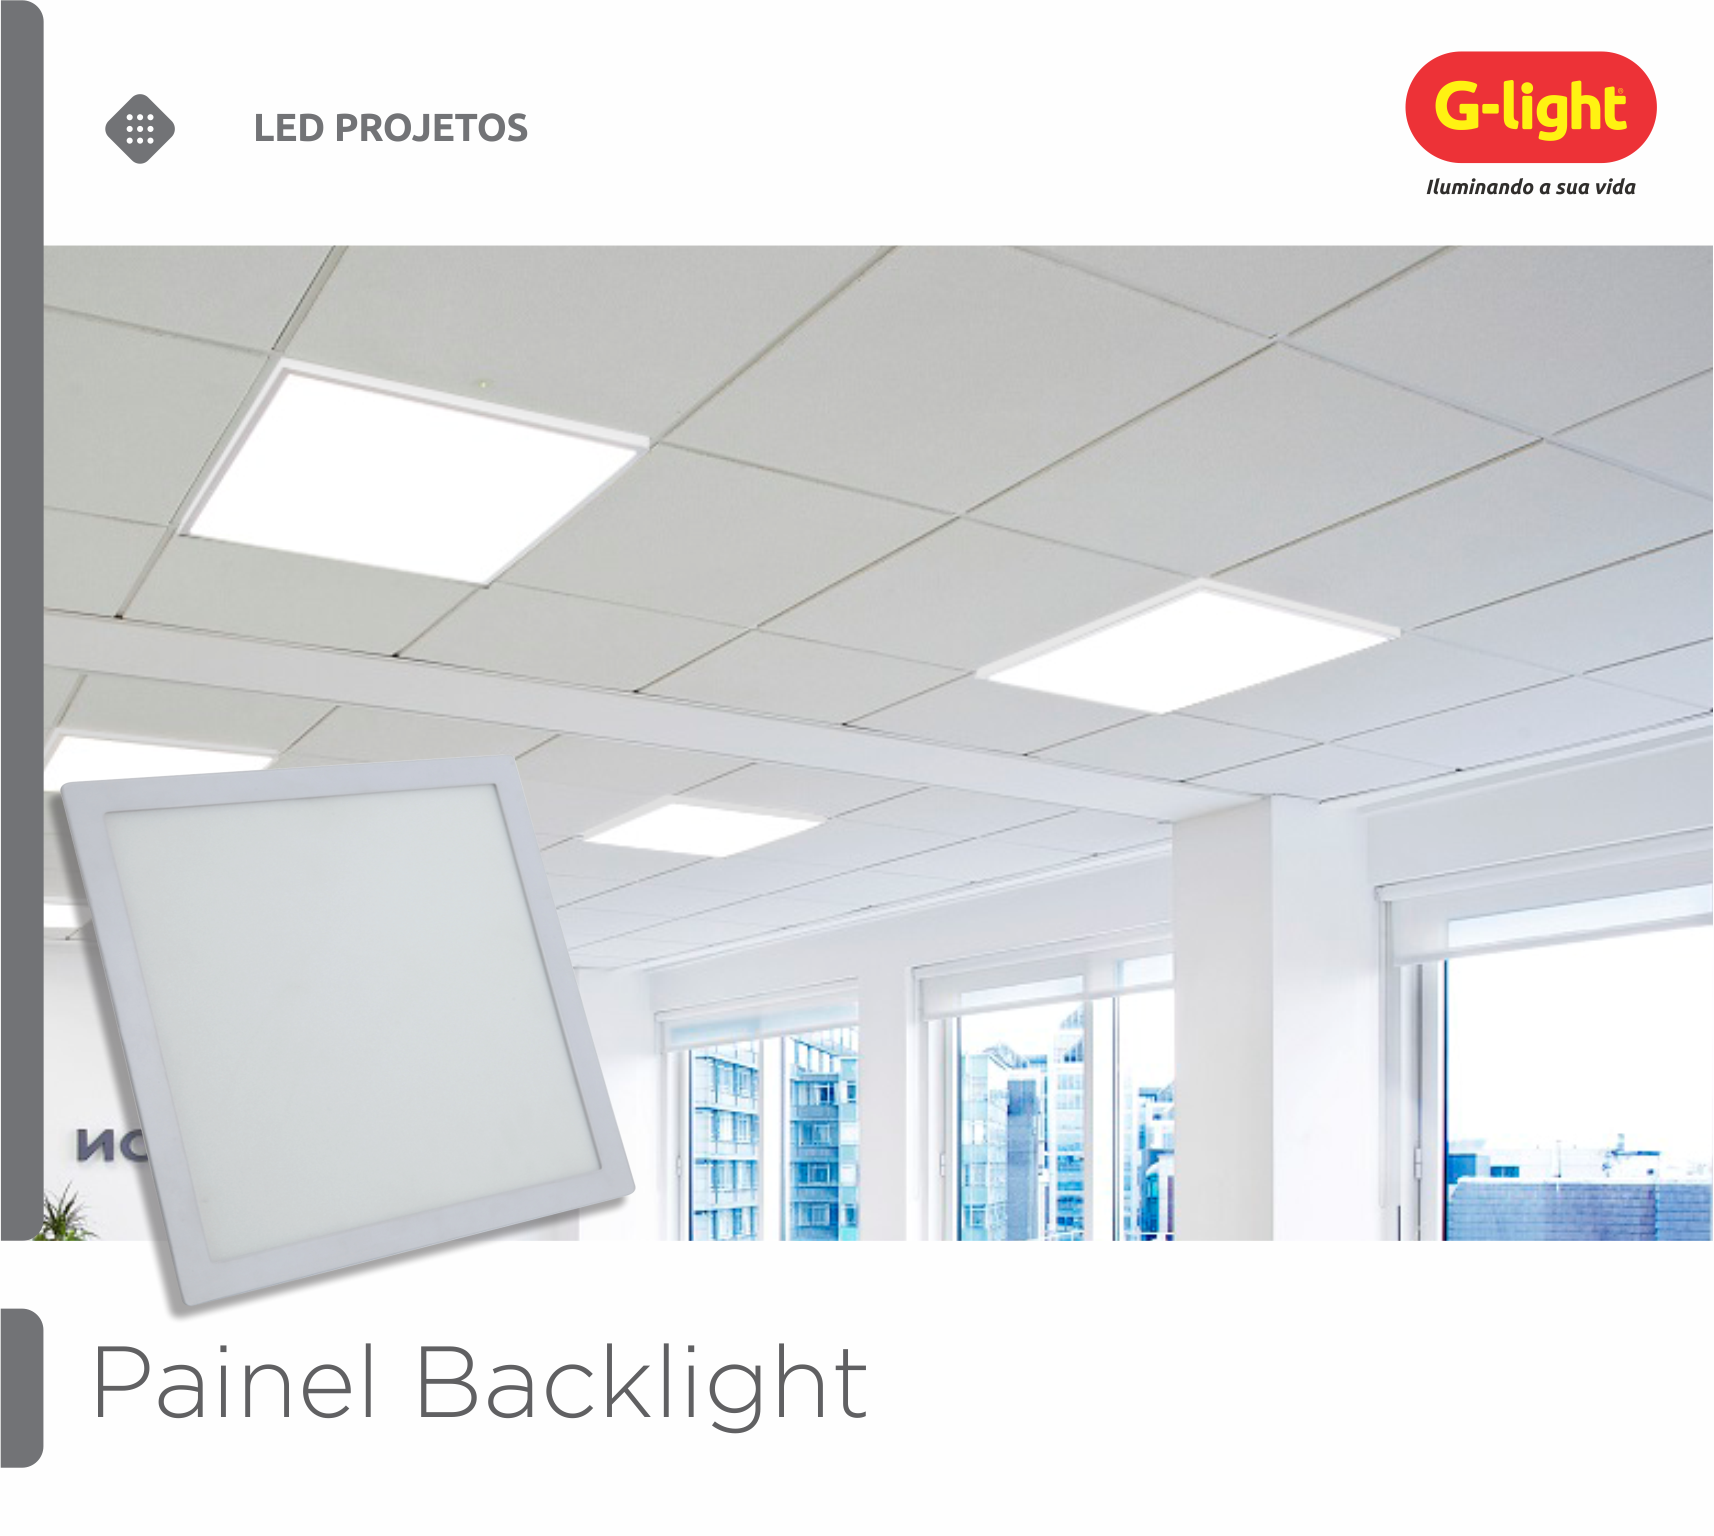 Painel Backlight